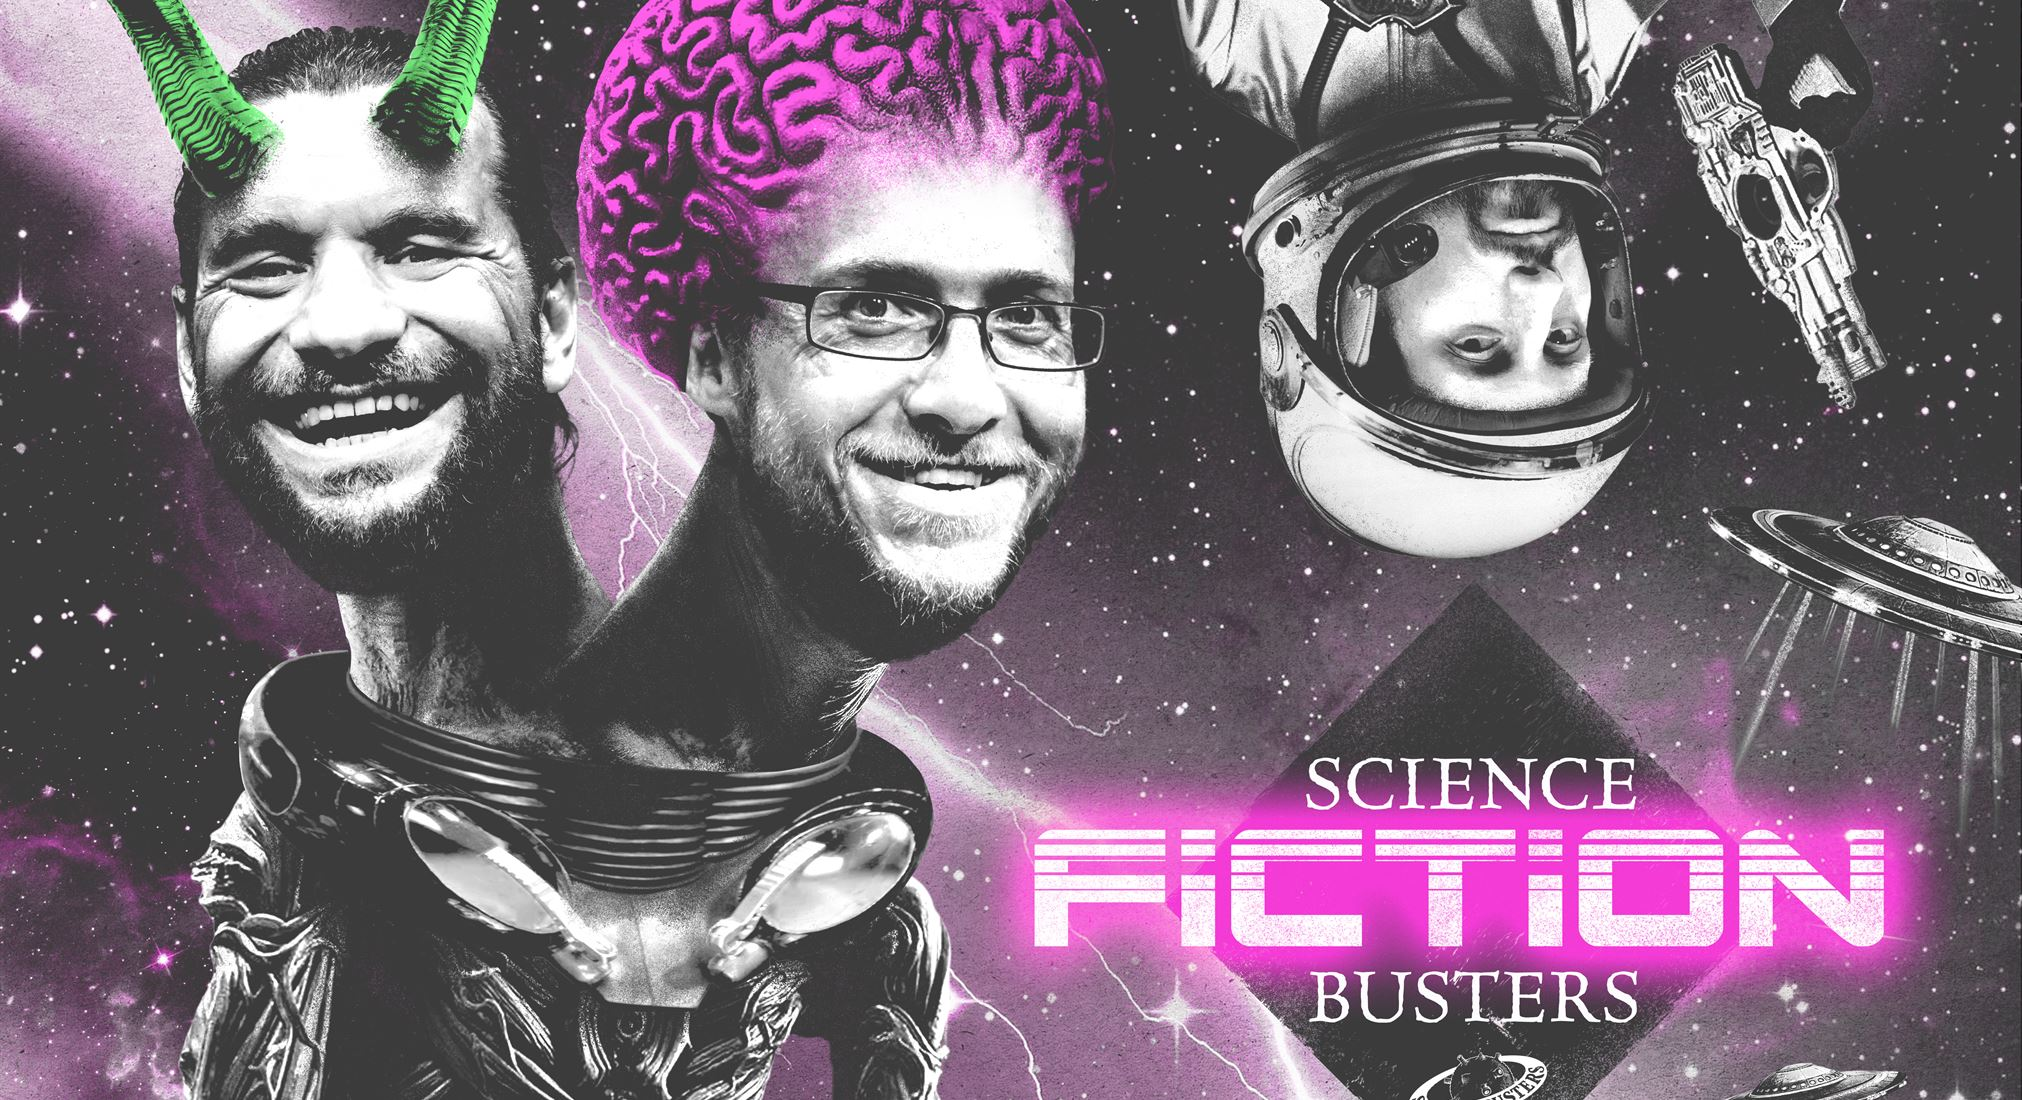 Science Fiction Busters am 06.10.2018 um 20:00 Uhr